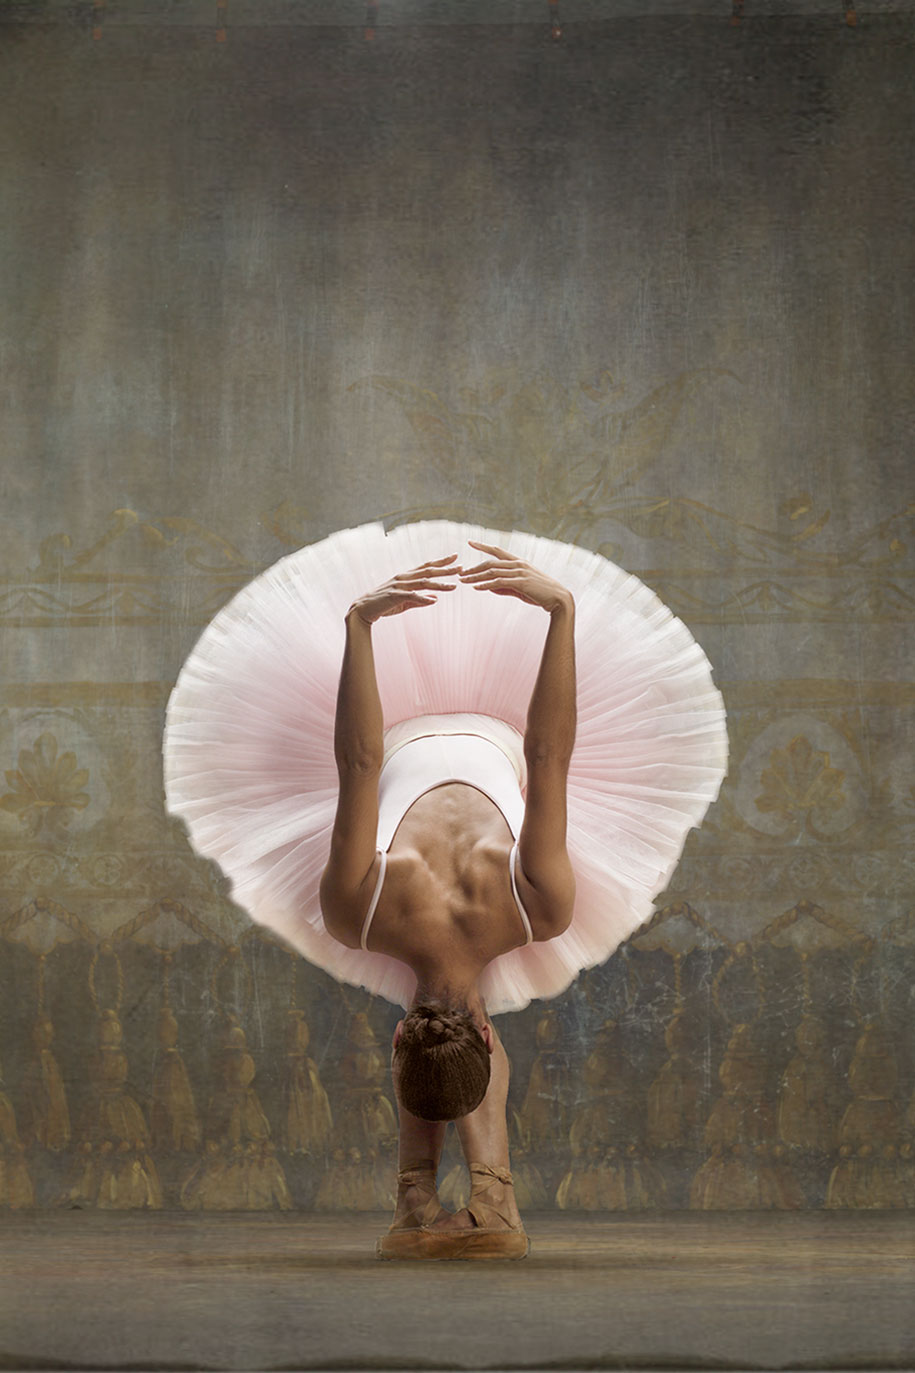 edgar-degas-ballet-dancer-painting-photoshoot-misty-copeland-harpers-bazaar-8